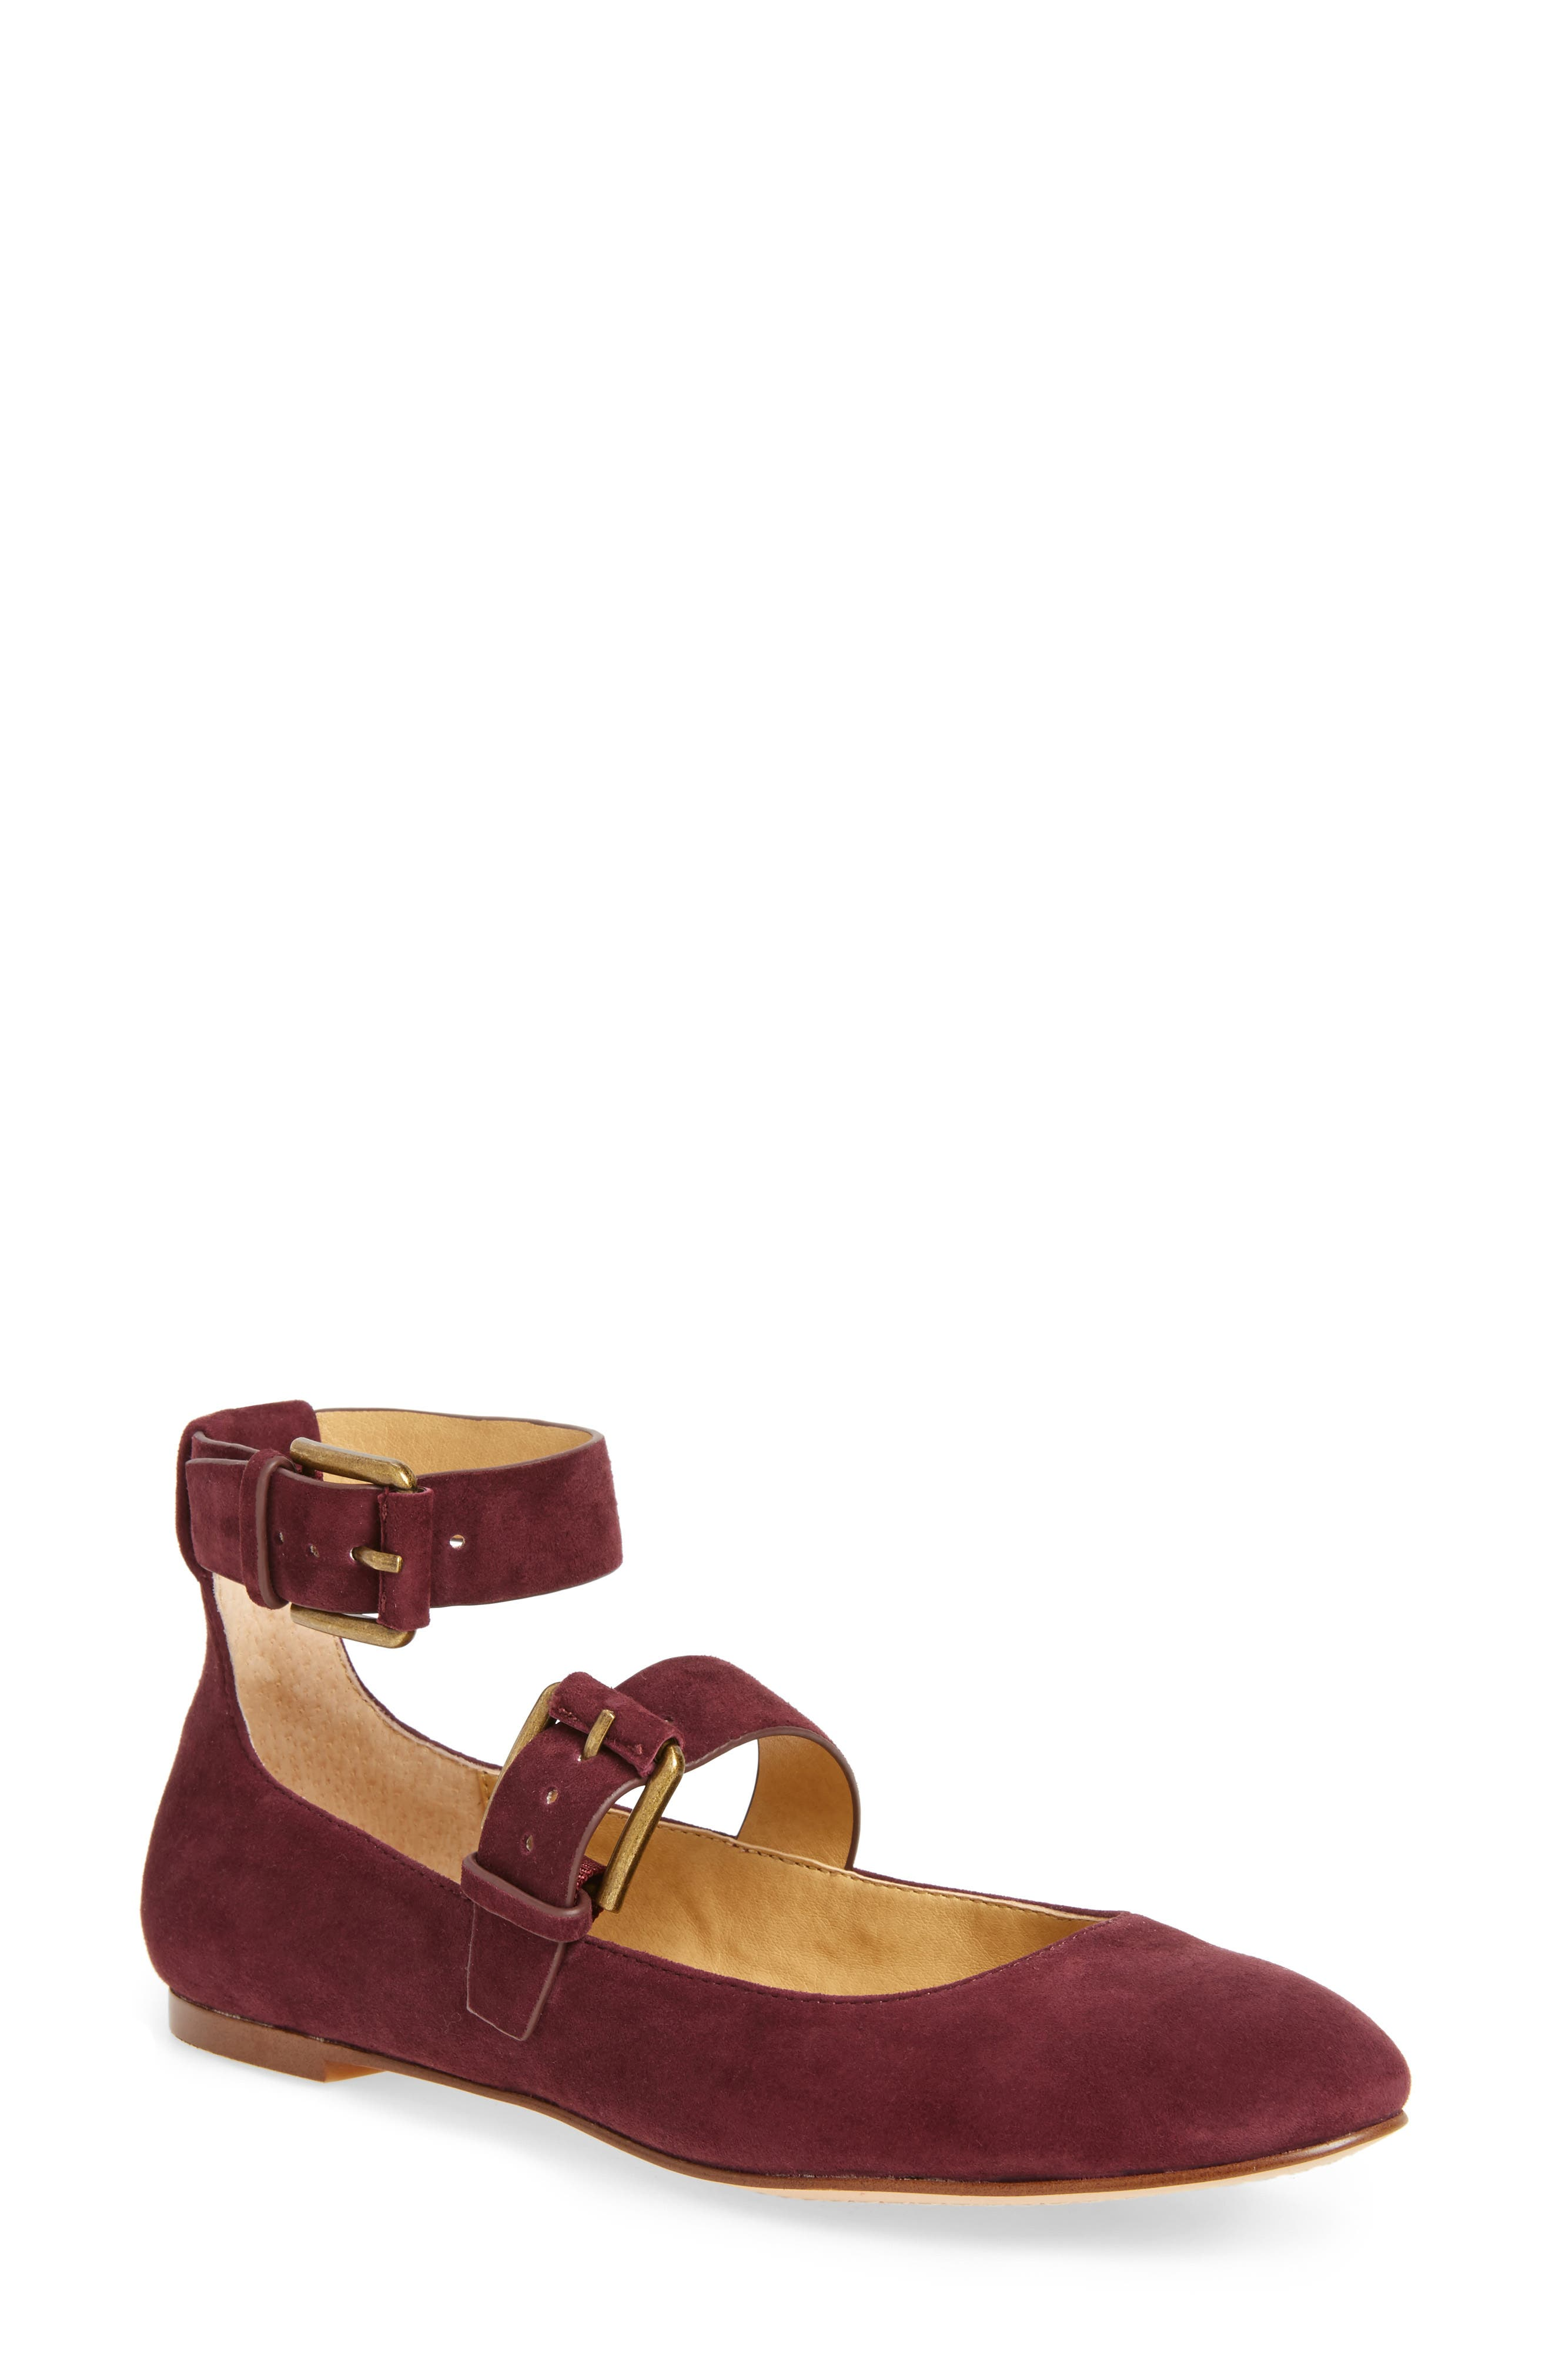 Dalenna Ankle Strap Ballet Flat,                             Main thumbnail 3, color,